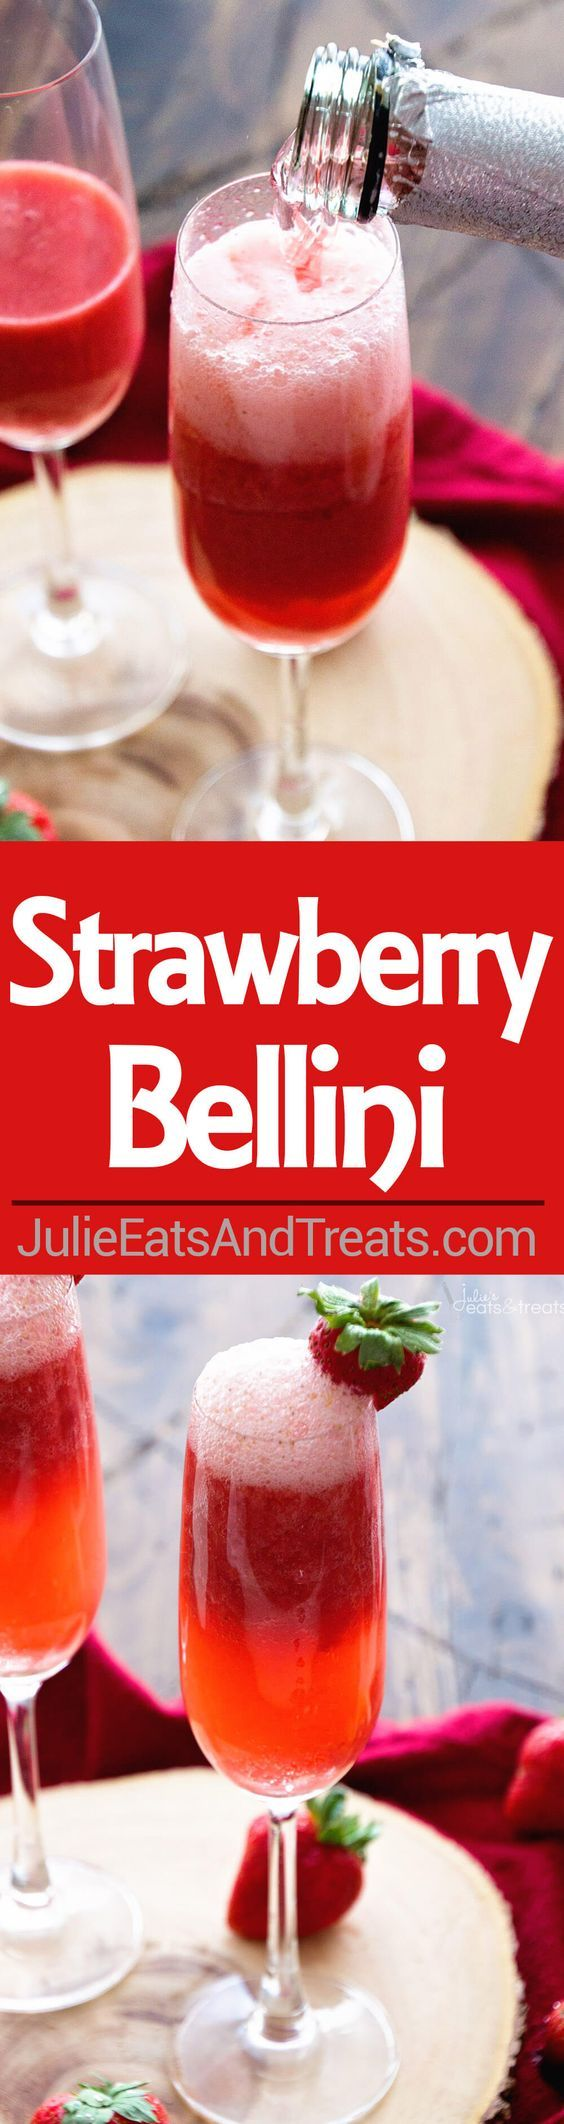 Strawberry Bellini Recipe ~ delicious, easy Bellini recipe perfect for celebrating...fresh strawberries, brandy and sparkling moscato make this a festive drink!